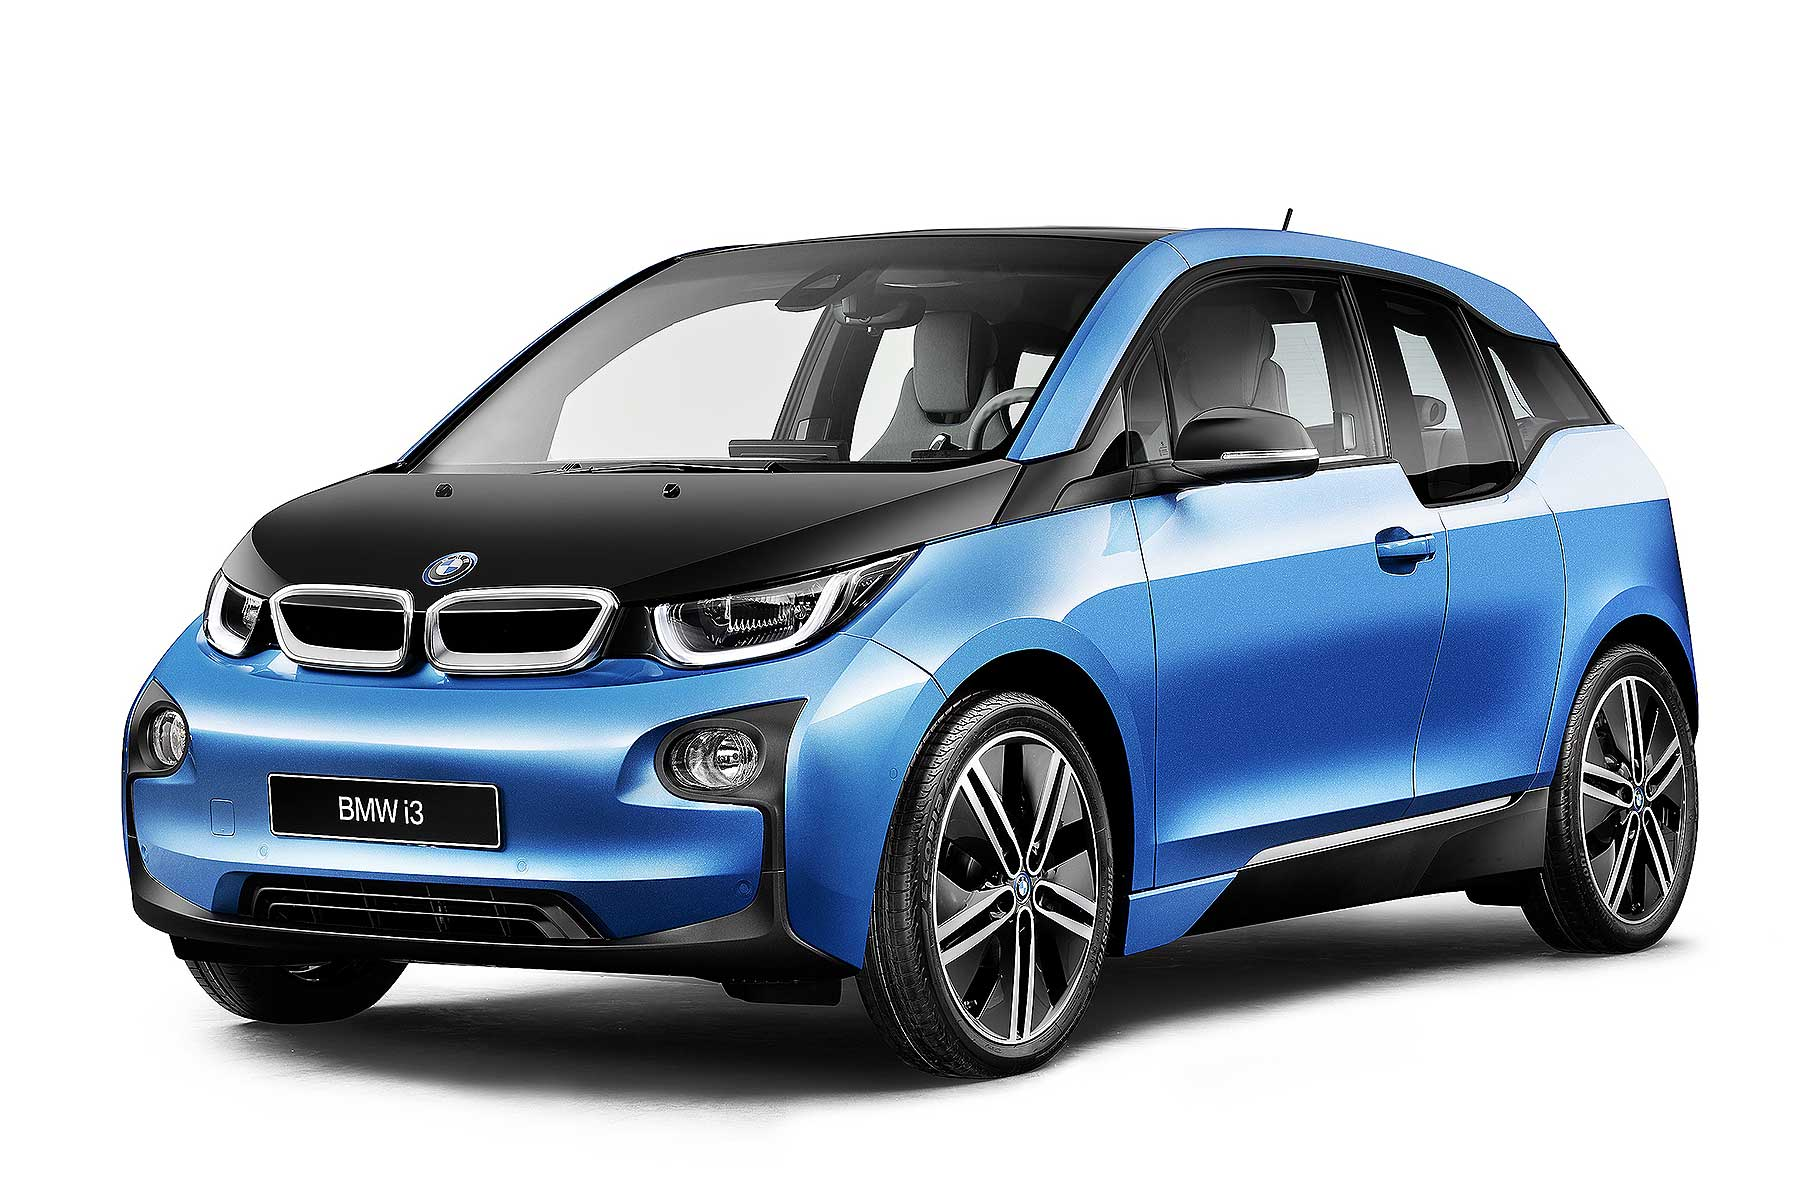 bmw i3 electric car range extended to 195 miles motoring research. Black Bedroom Furniture Sets. Home Design Ideas